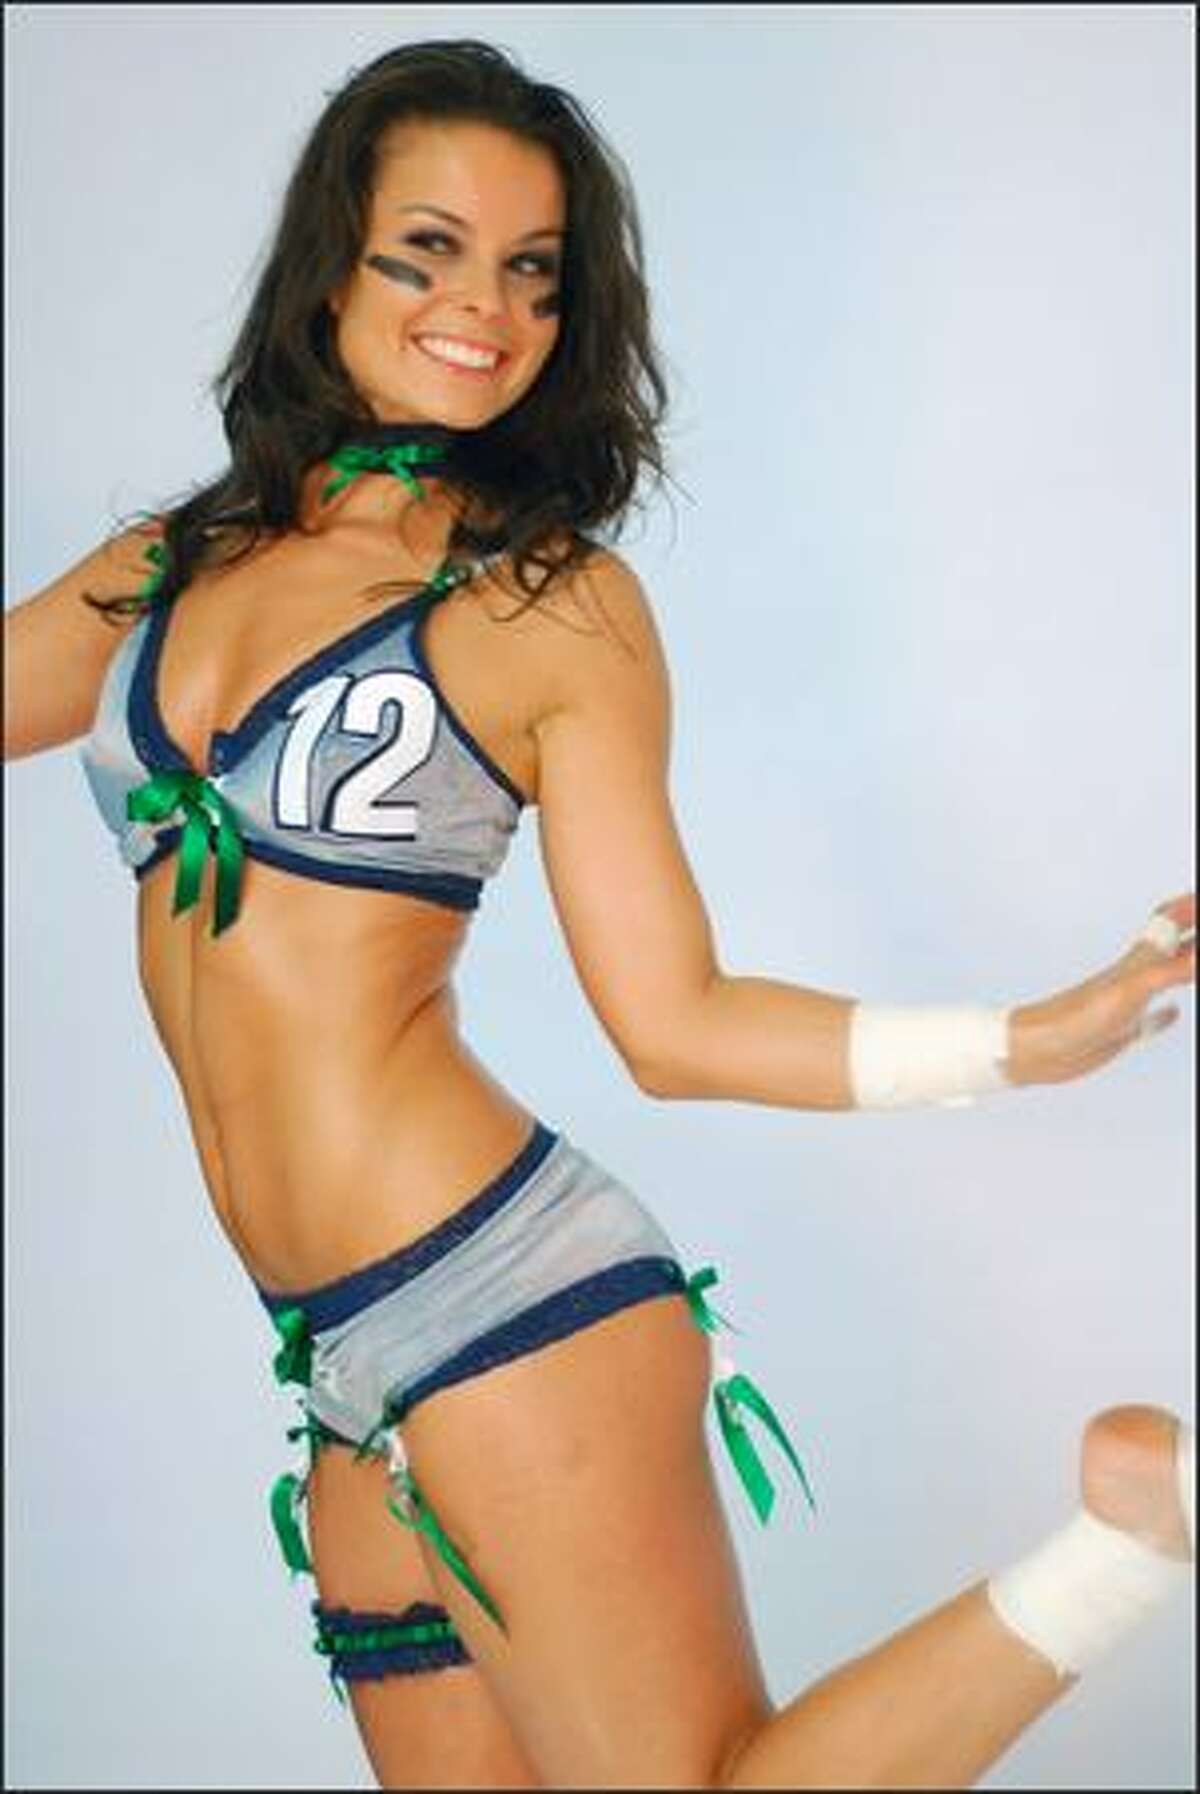 Shannon Sypher cheers after a successful photoshoot.